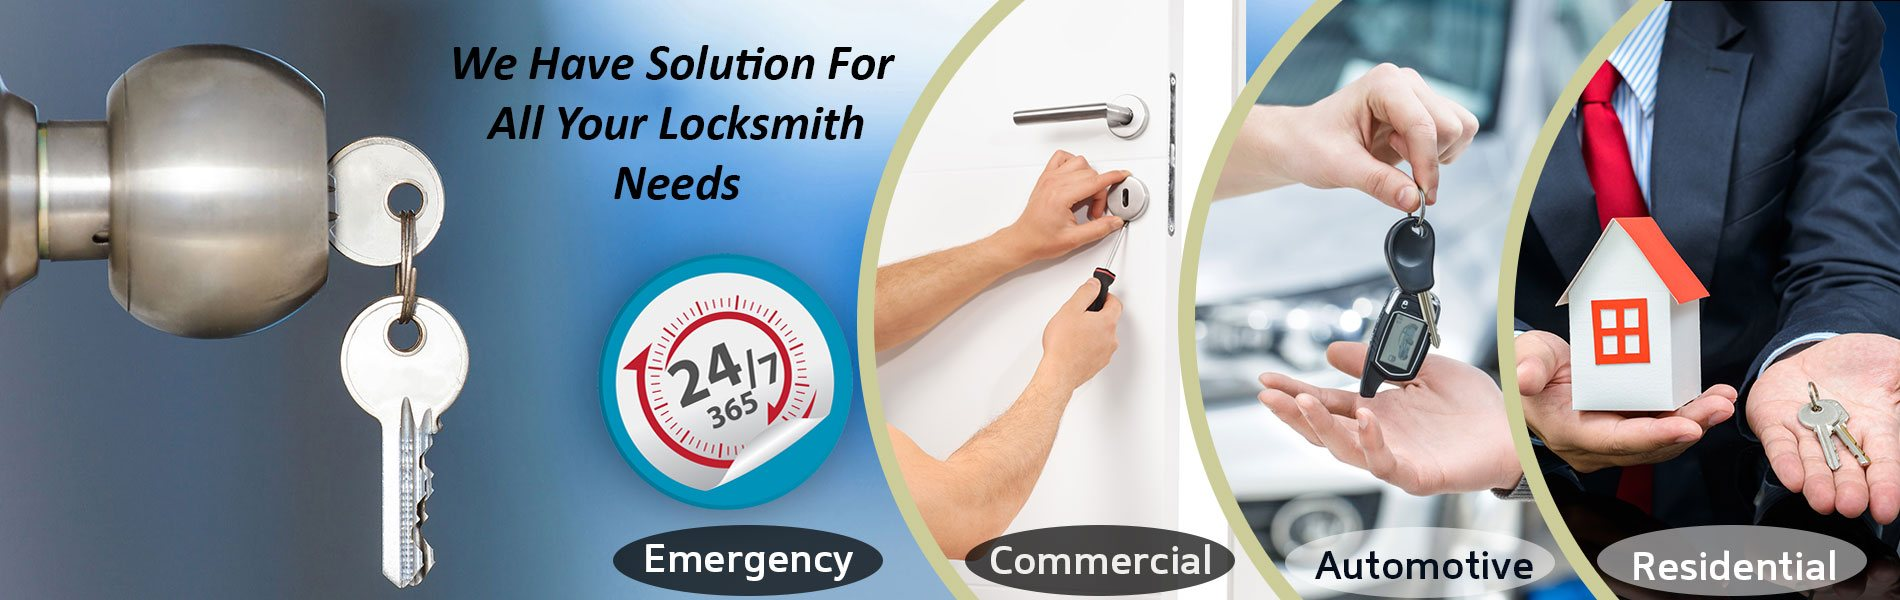 Pittsburgh Affordable Locksmith Pittsburgh, PA 412-226-6521